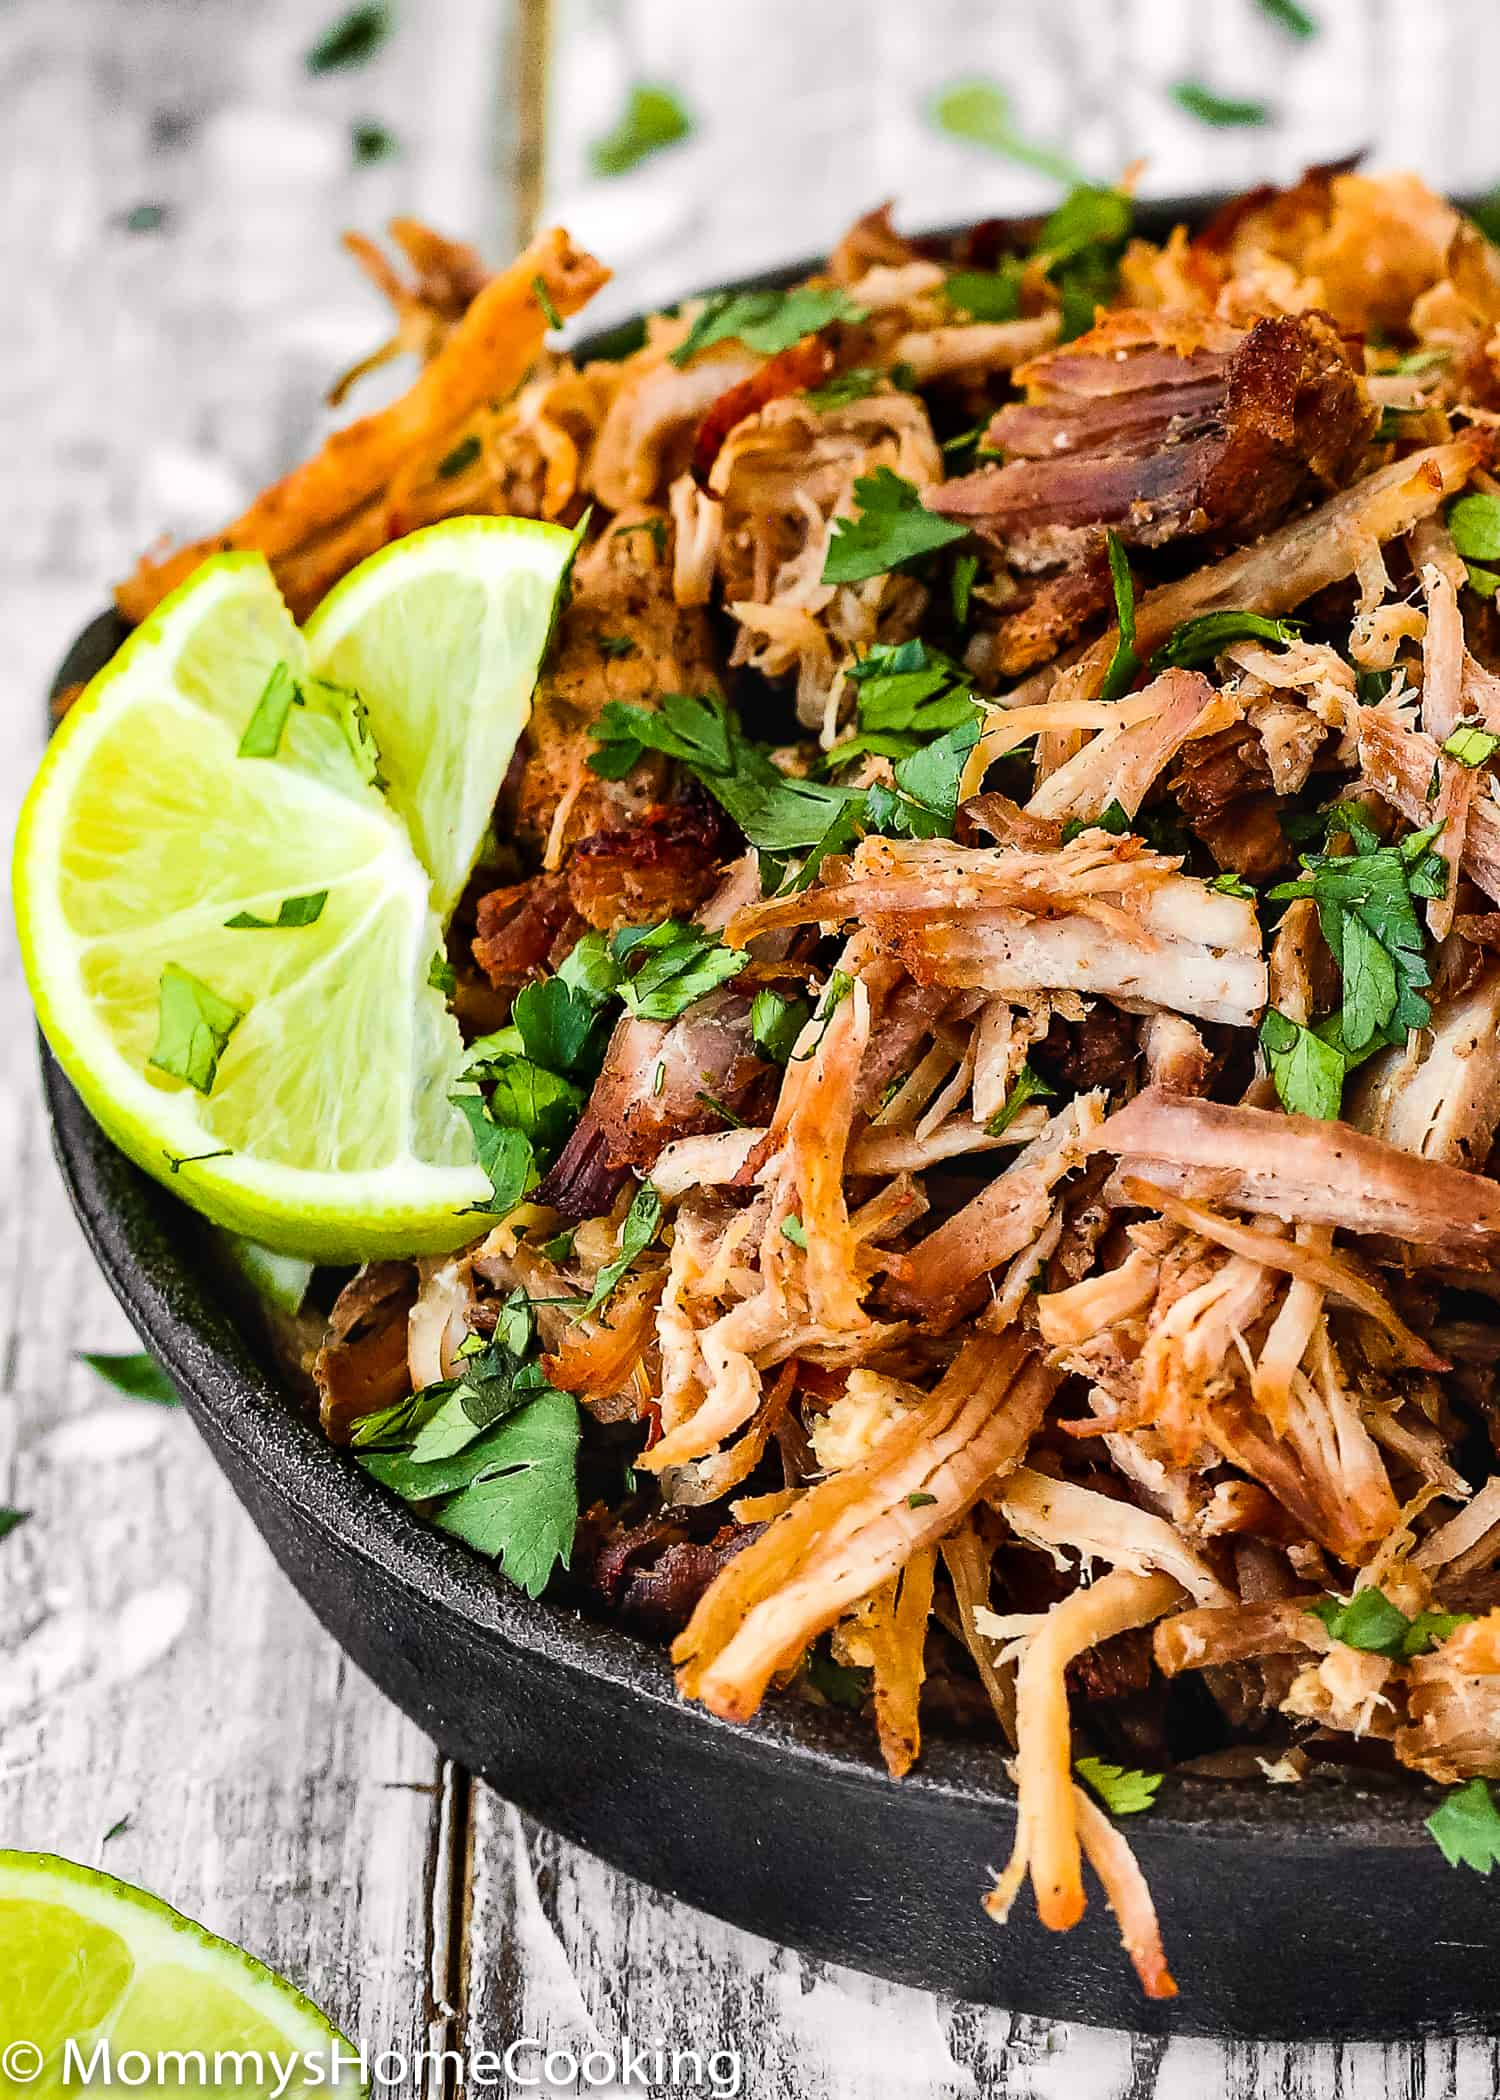 These Instant Pot Crispy Pork Carnitas are flavorful, tender, juicy, zesty, and they could not be easier to make! Toss it all in your Instant Pot, let it cook, and listo! These are great to make tacos, tostadas, sandwiches, sliders, arepas and more. Whole30 compliant. https://mommyshomecooking.com